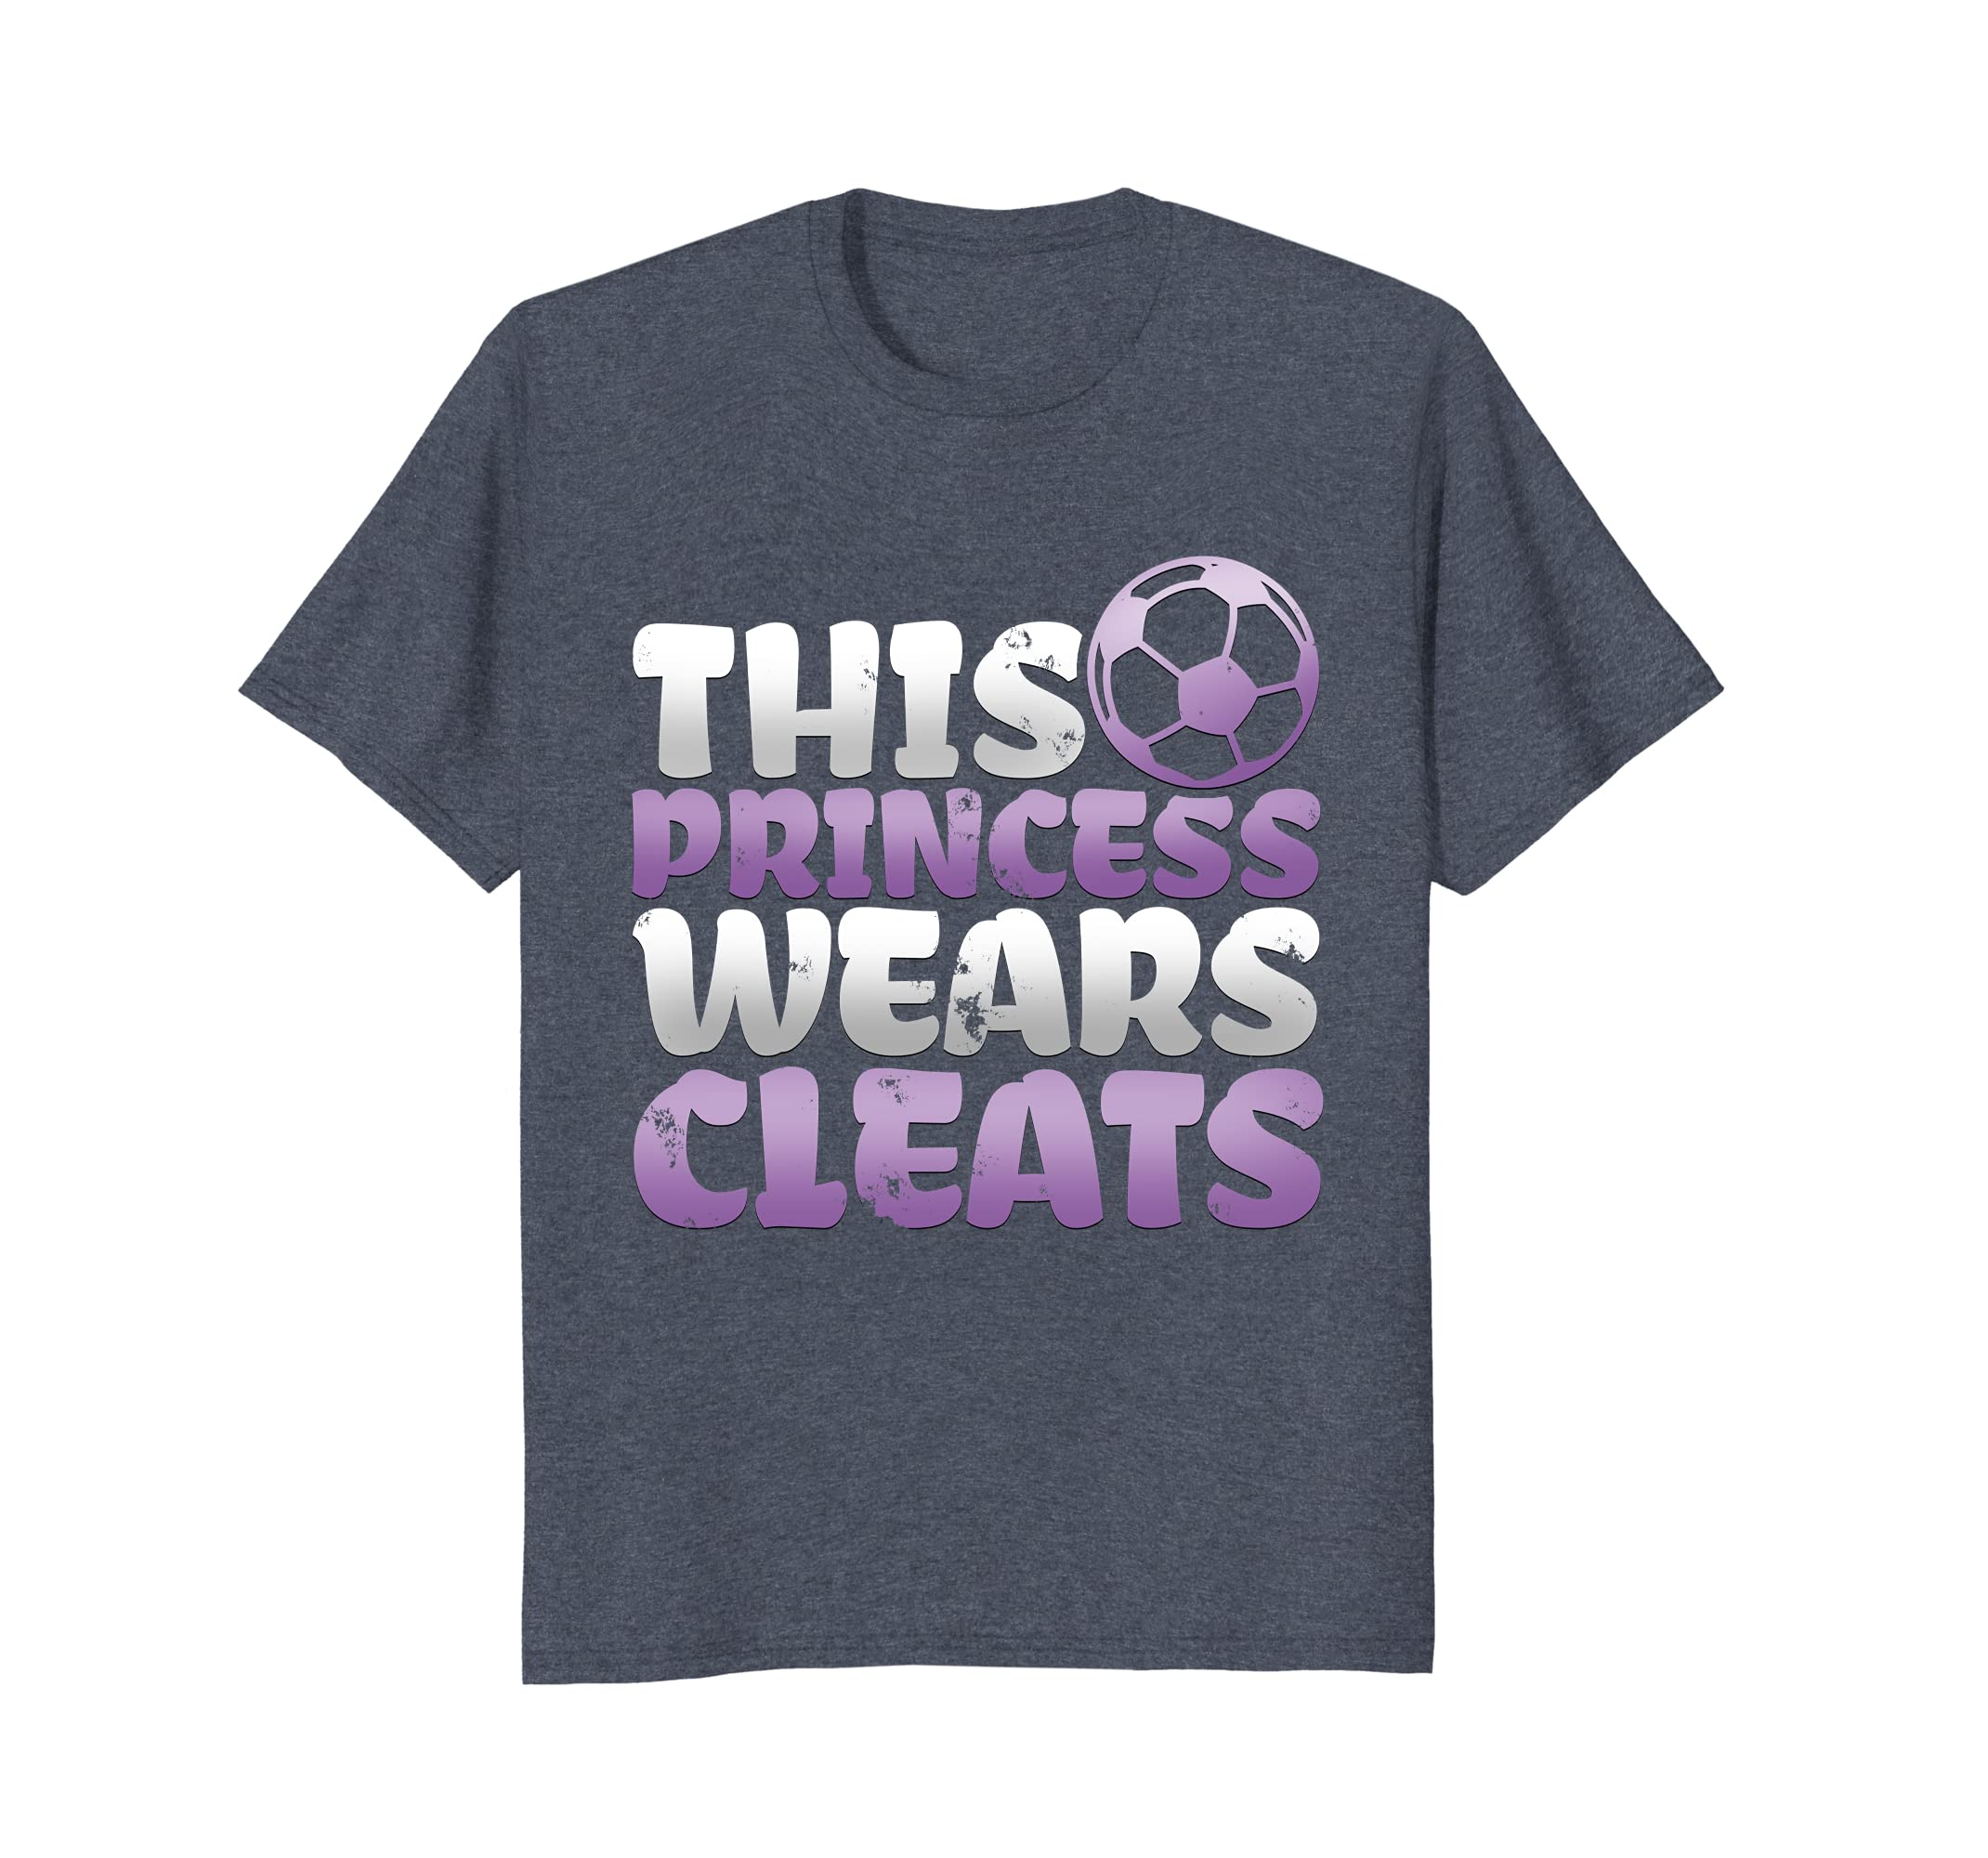 Girls Soccer T Shirt - This Princess Wears Cleats | MultiMv- Cool T ...